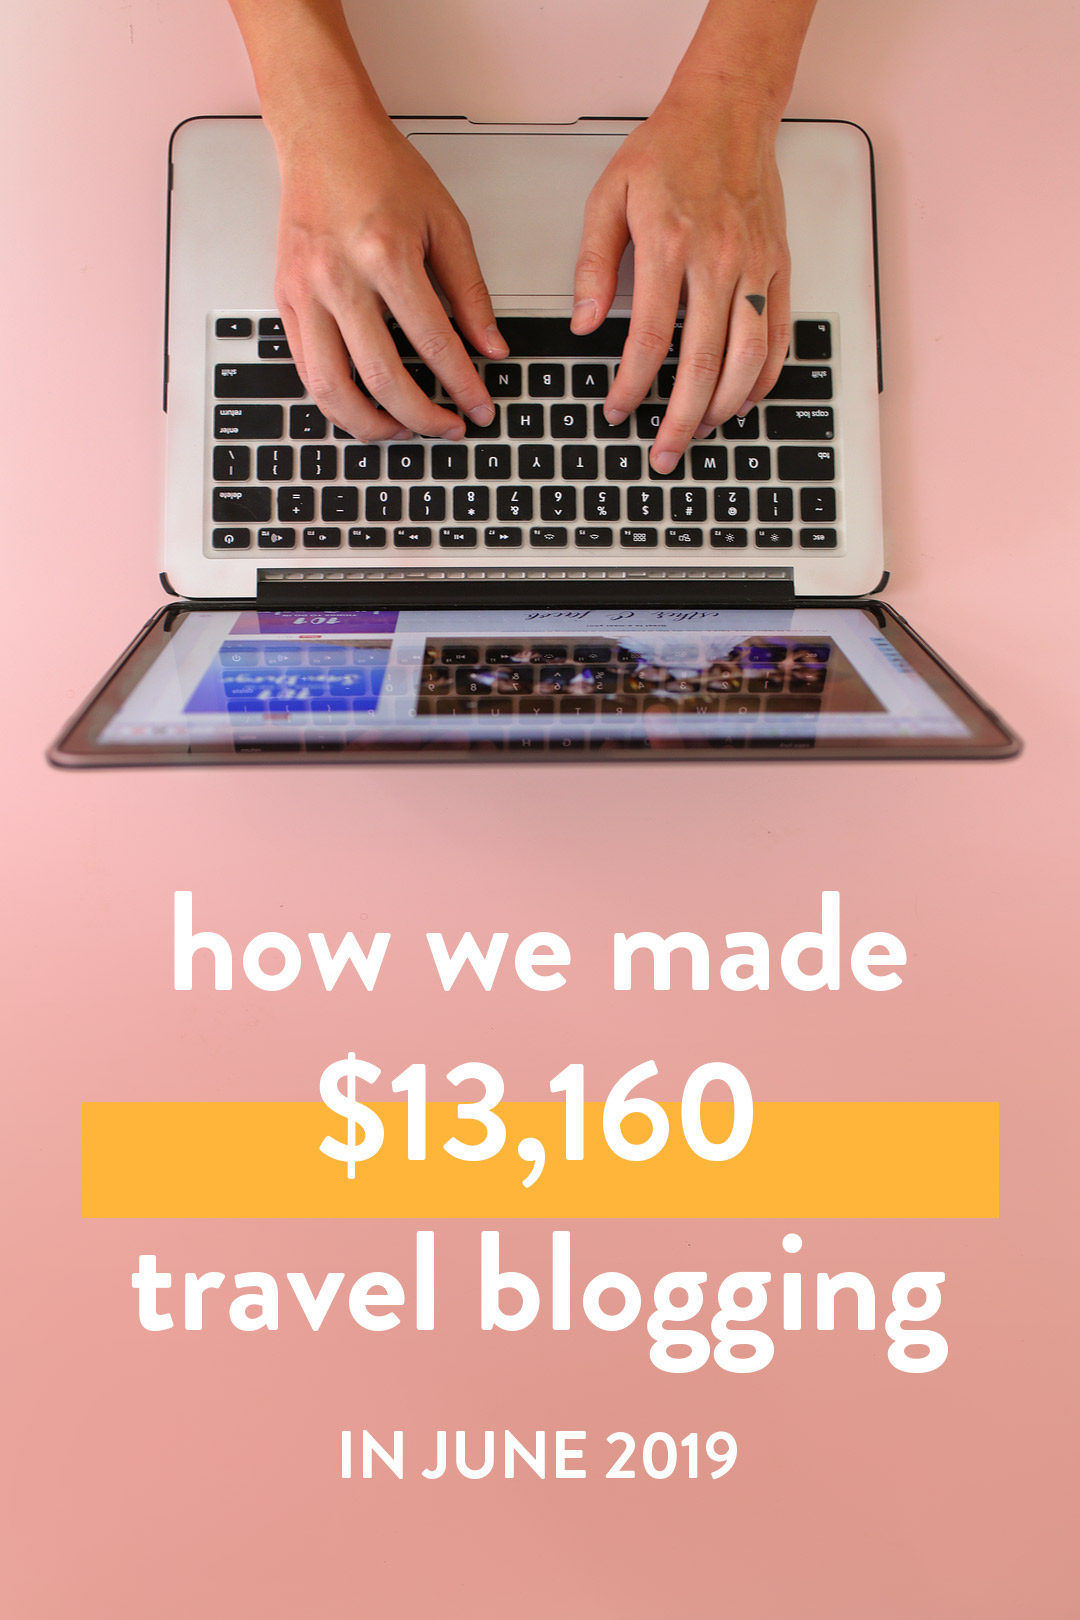 Blog Income Report - How We Made Over $13.1K on the Travel Blog in June